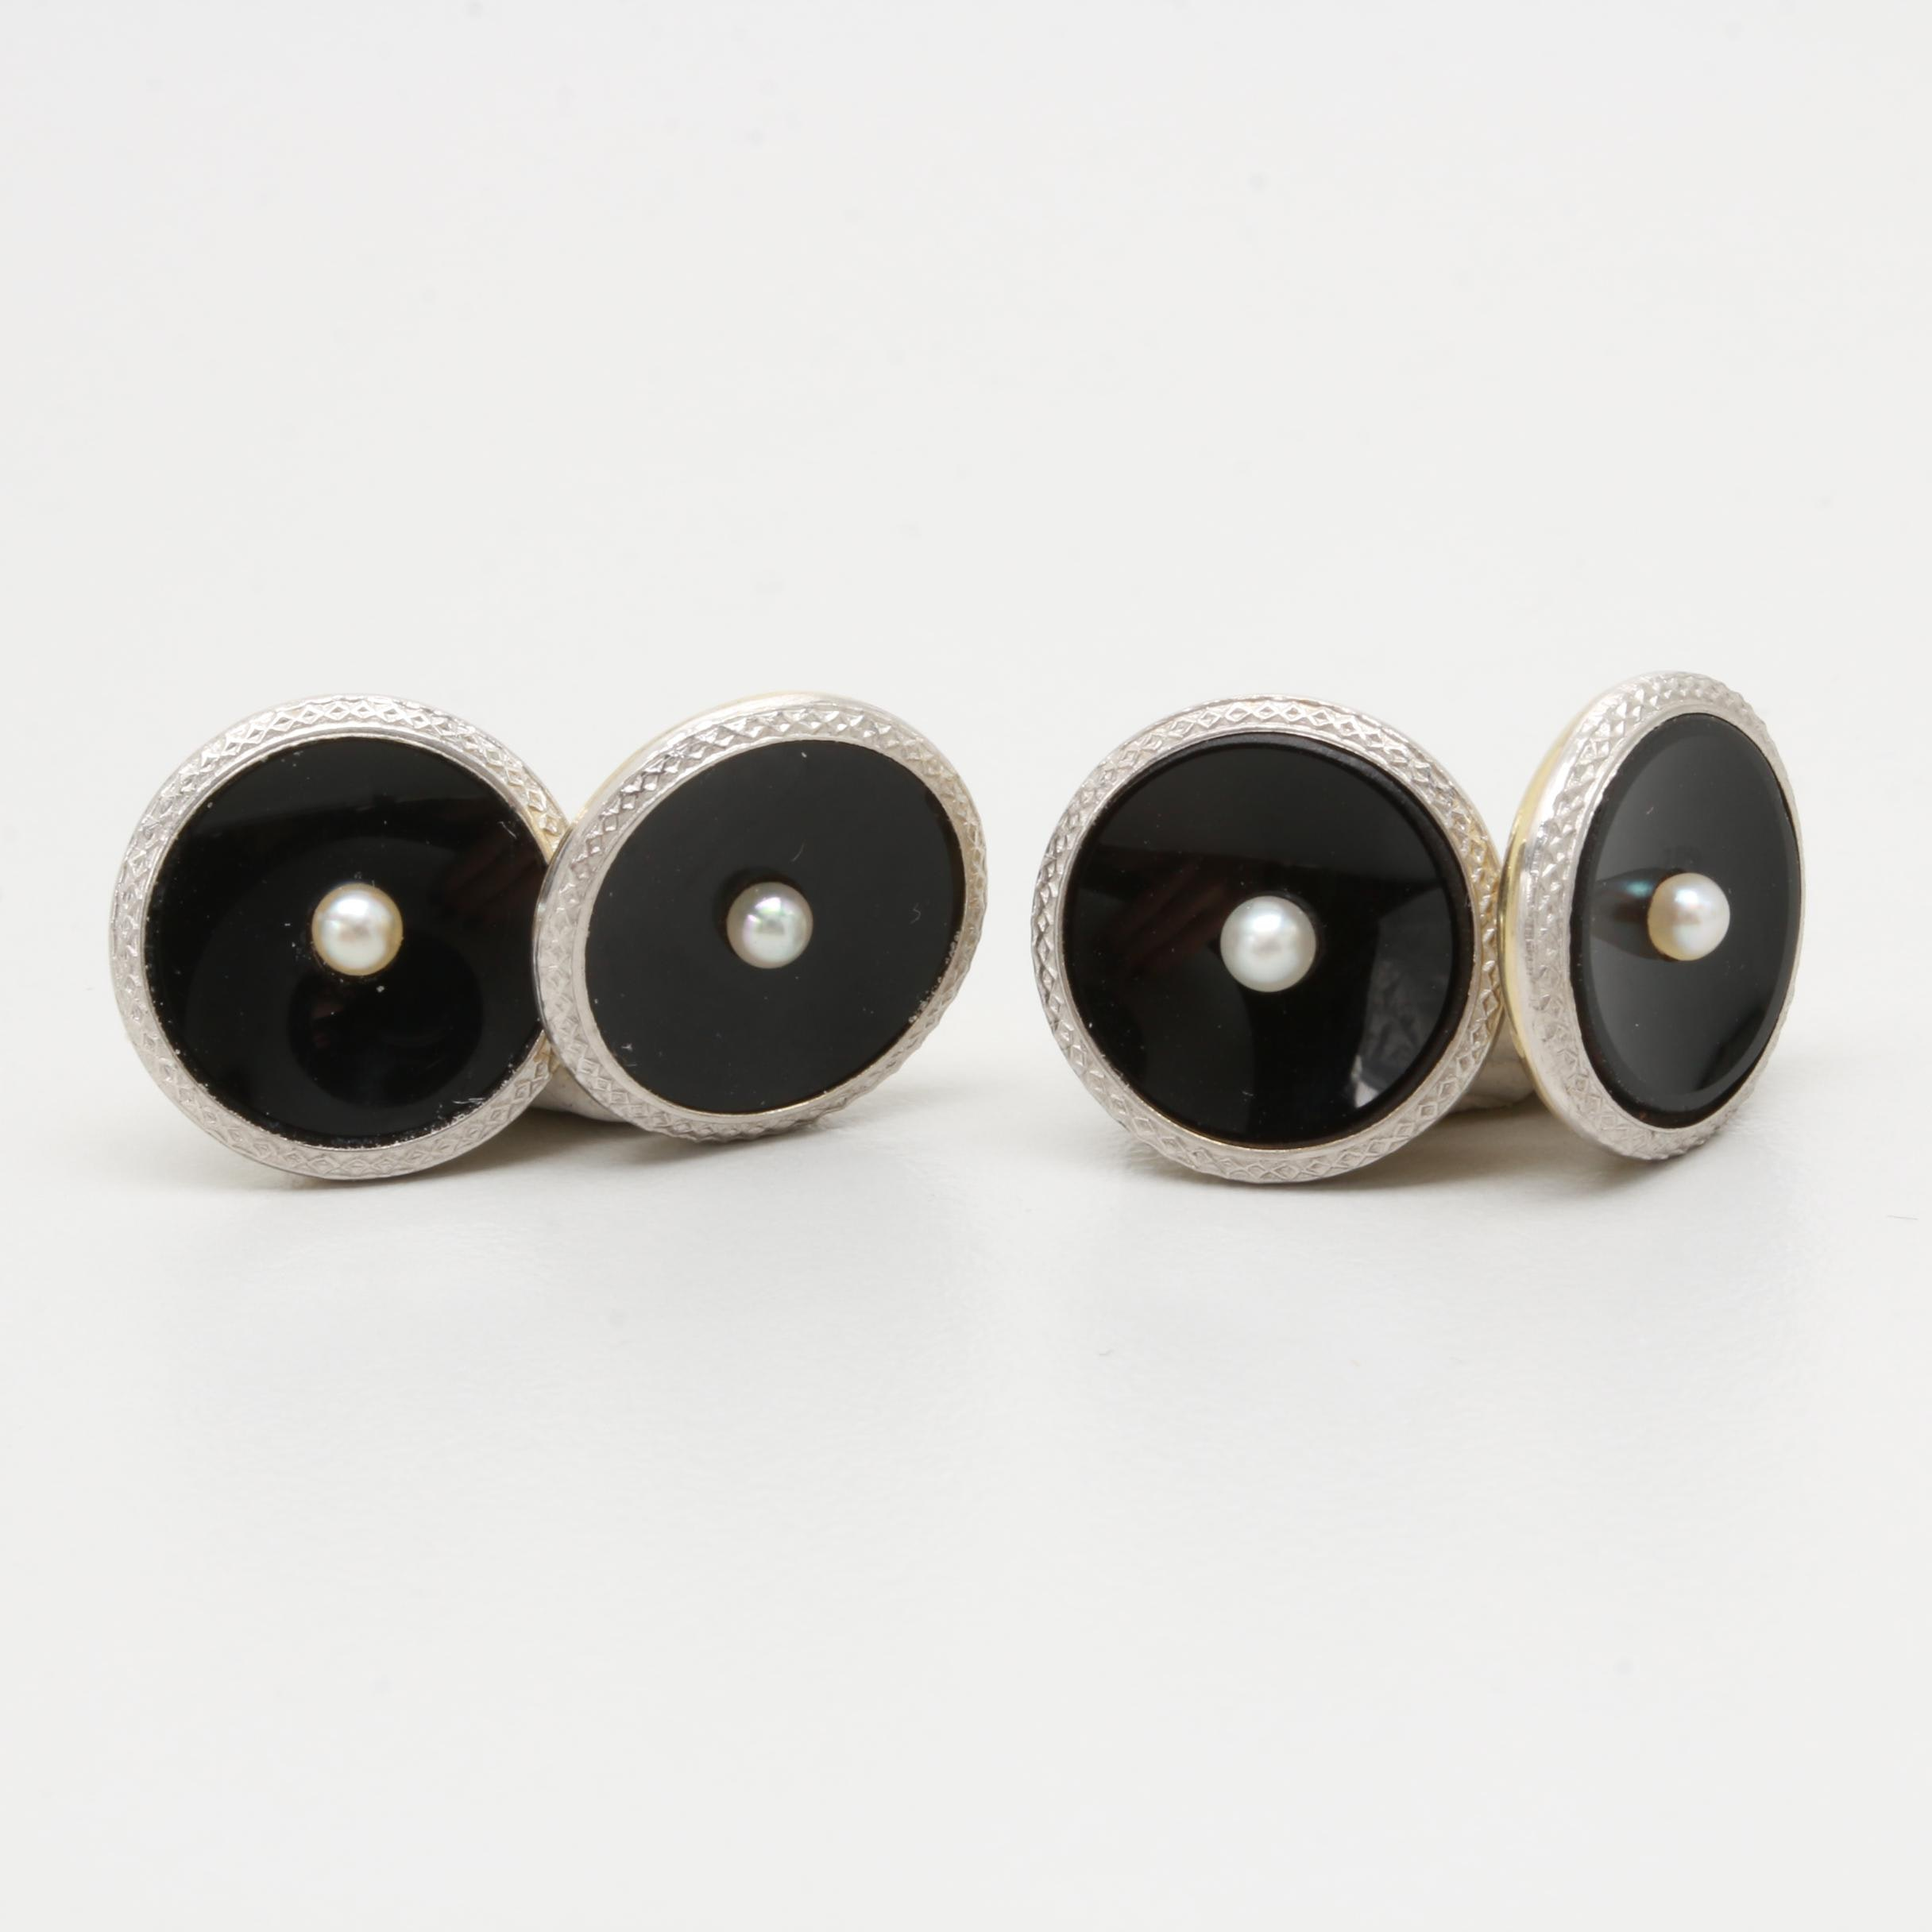 14K Yellow Gold and Platinum Onyx and Cultured Pearl Cufflinks